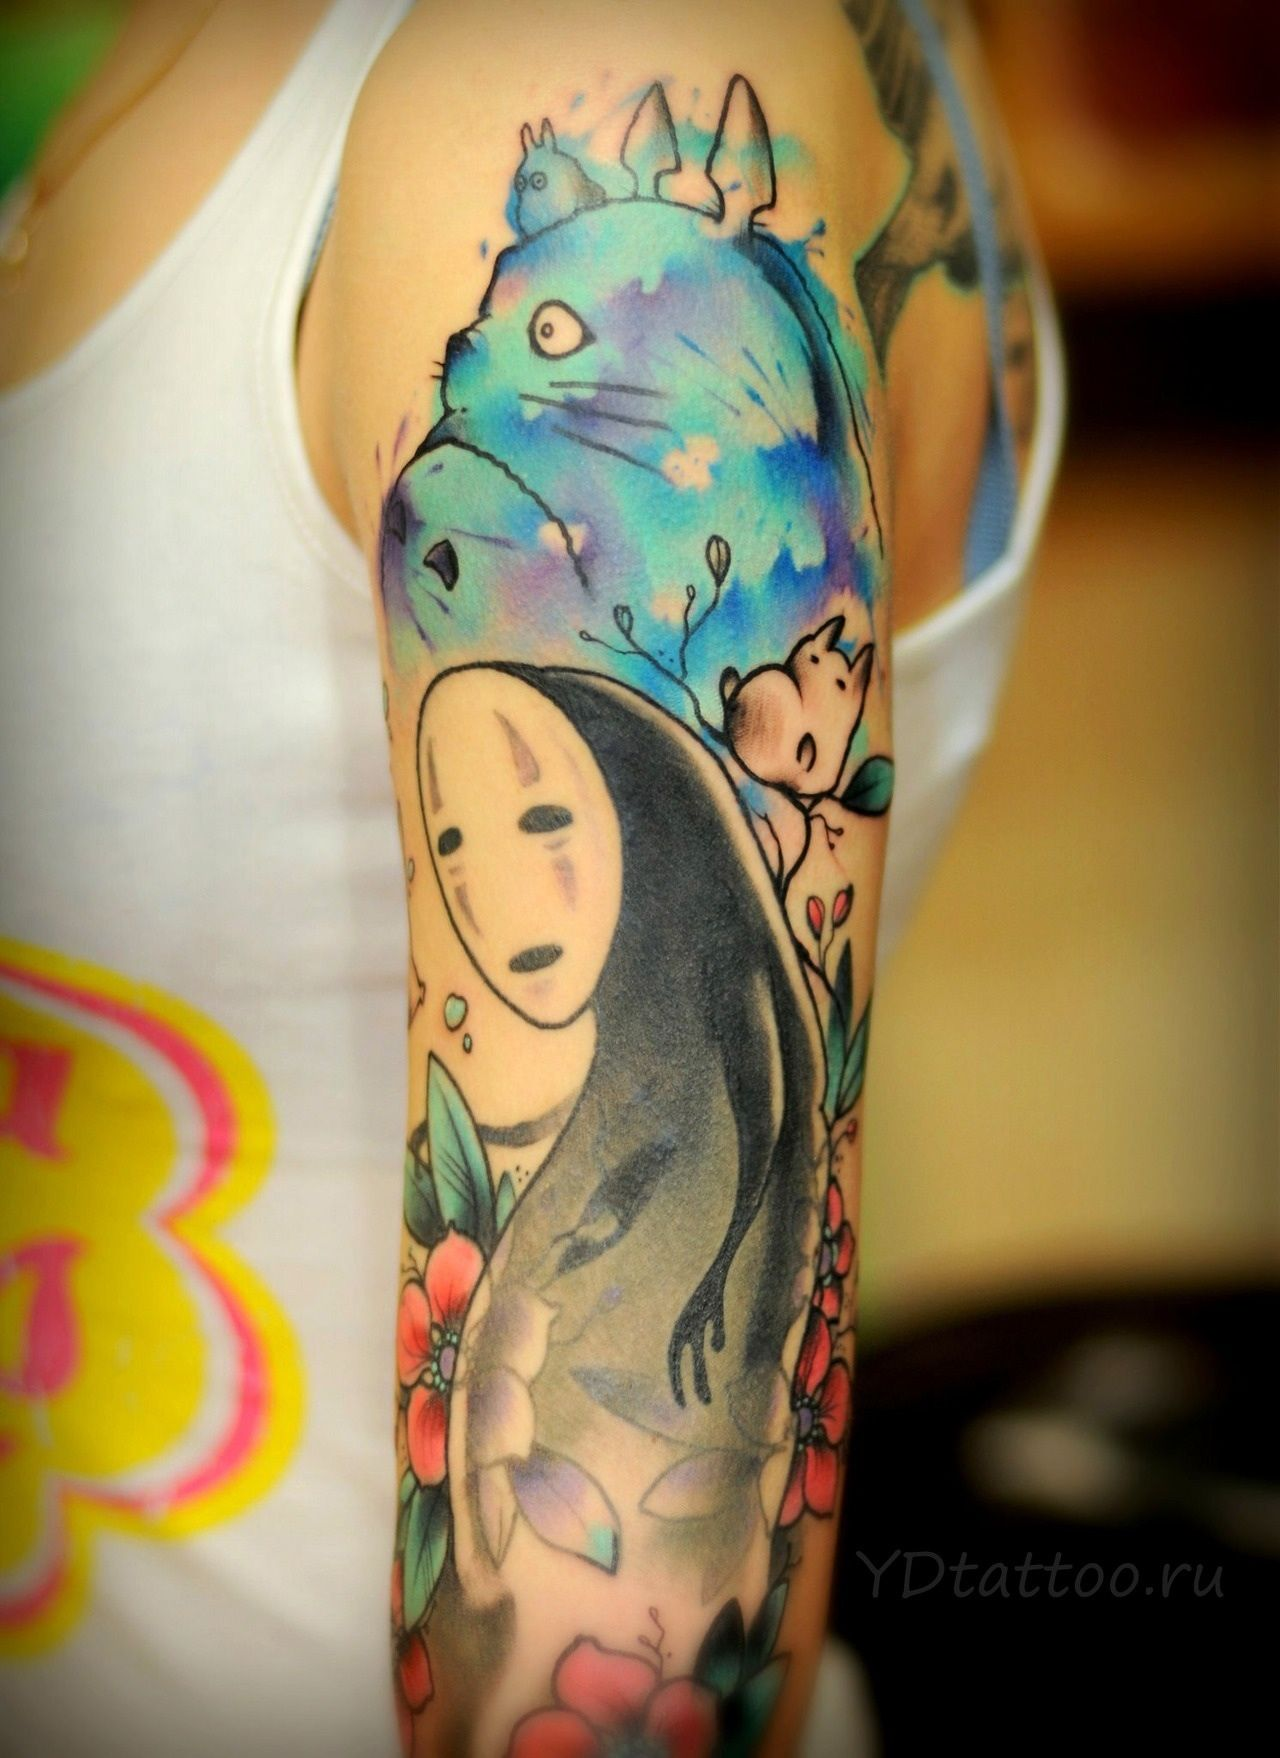 Studio Ghibli Inspired Beautiful Water Color Tattoo Credits To Owner